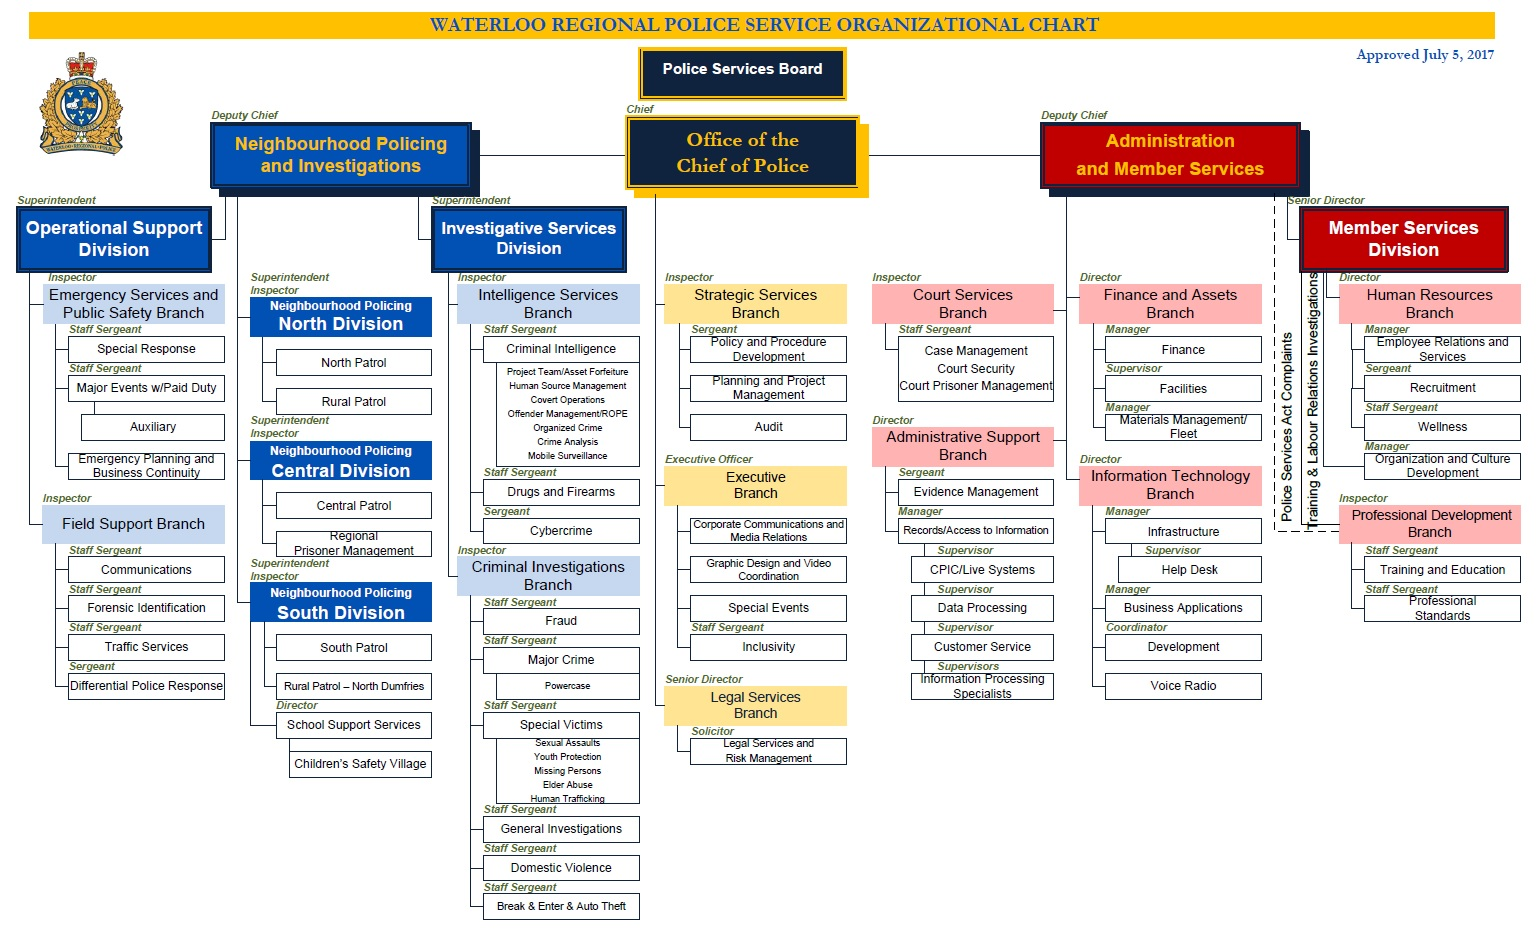 Organizational chart of the WRPS